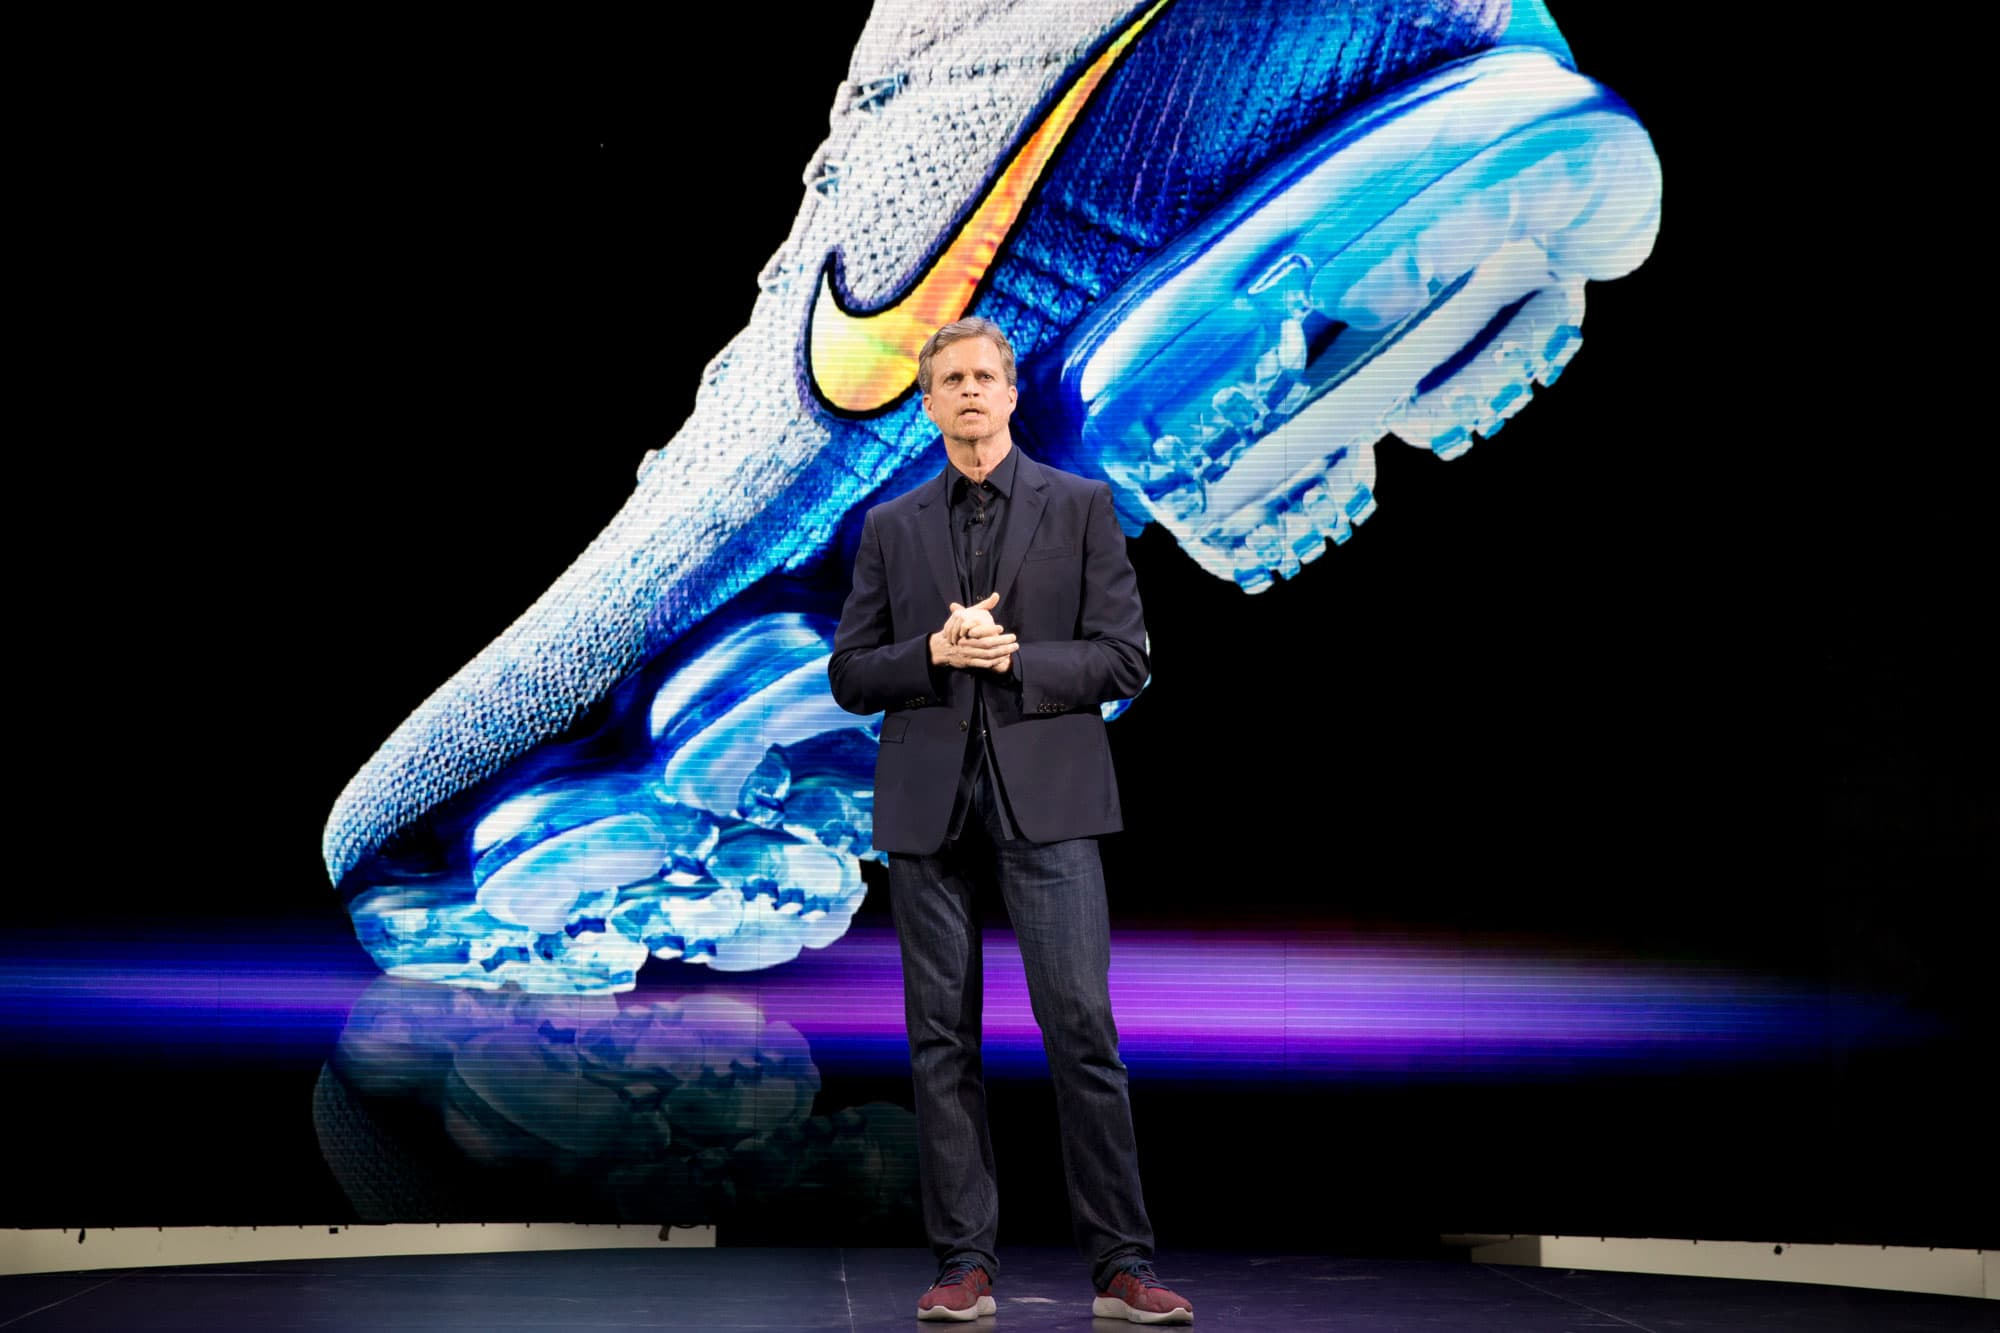 An image of the Nike Air VaporMax is projected on a screen as Nike CEO Mark Parker speaks during a news conference, March 16, 2016, in New York.